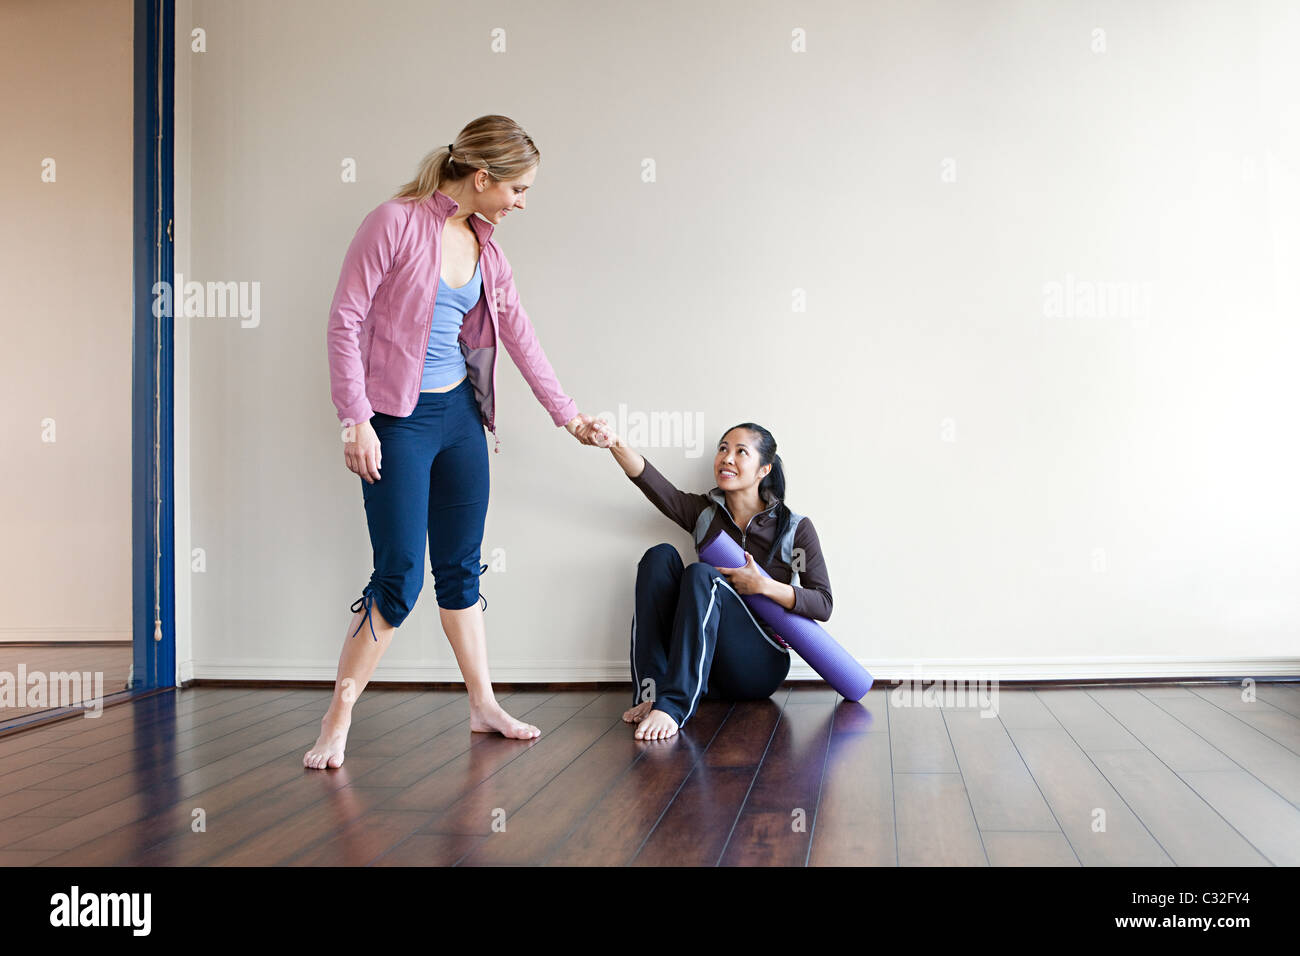 Woman helping another woman up from the gym floor - Stock Image